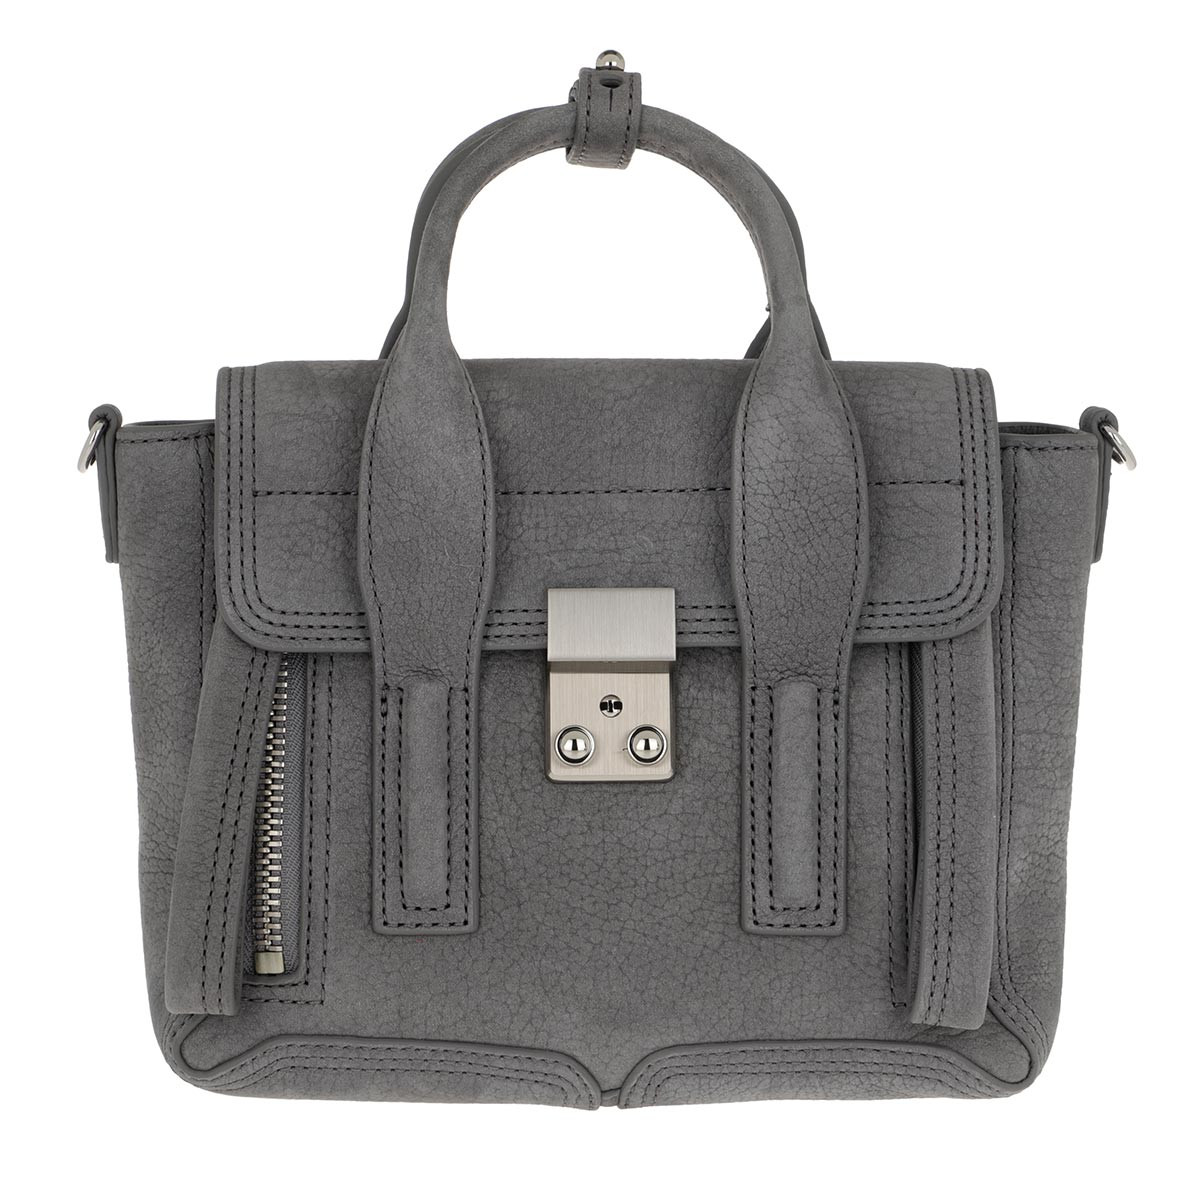 3.1 Phillip Lim Satchel Bag - Pashli Mini Satchel Bag Cement - in grau - für Damen